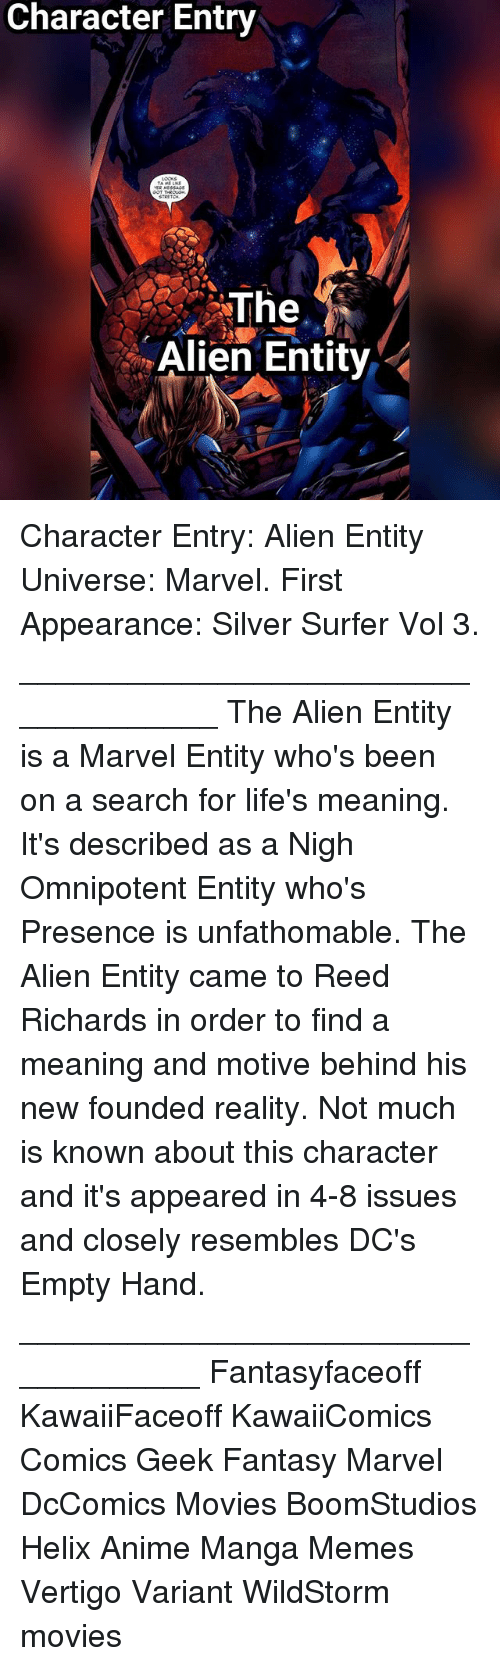 Anime, Memes, and Movies: Character Entry  The  Alien Entity Character Entry: Alien Entity Universe: Marvel. First Appearance: Silver Surfer Vol 3. ____________________________________ The Alien Entity is a Marvel Entity who's been on a search for life's meaning. It's described as a Nigh Omnipotent Entity who's Presence is unfathomable. The Alien Entity came to Reed Richards in order to find a meaning and motive behind his new founded reality. Not much is known about this character and it's appeared in 4-8 issues and closely resembles DC's Empty Hand. ___________________________________ Fantasyfaceoff KawaiiFaceoff KawaiiComics Comics Geek Fantasy Marvel DcComics Movies BoomStudios Helix Anime Manga Memes Vertigo Variant WildStorm movies